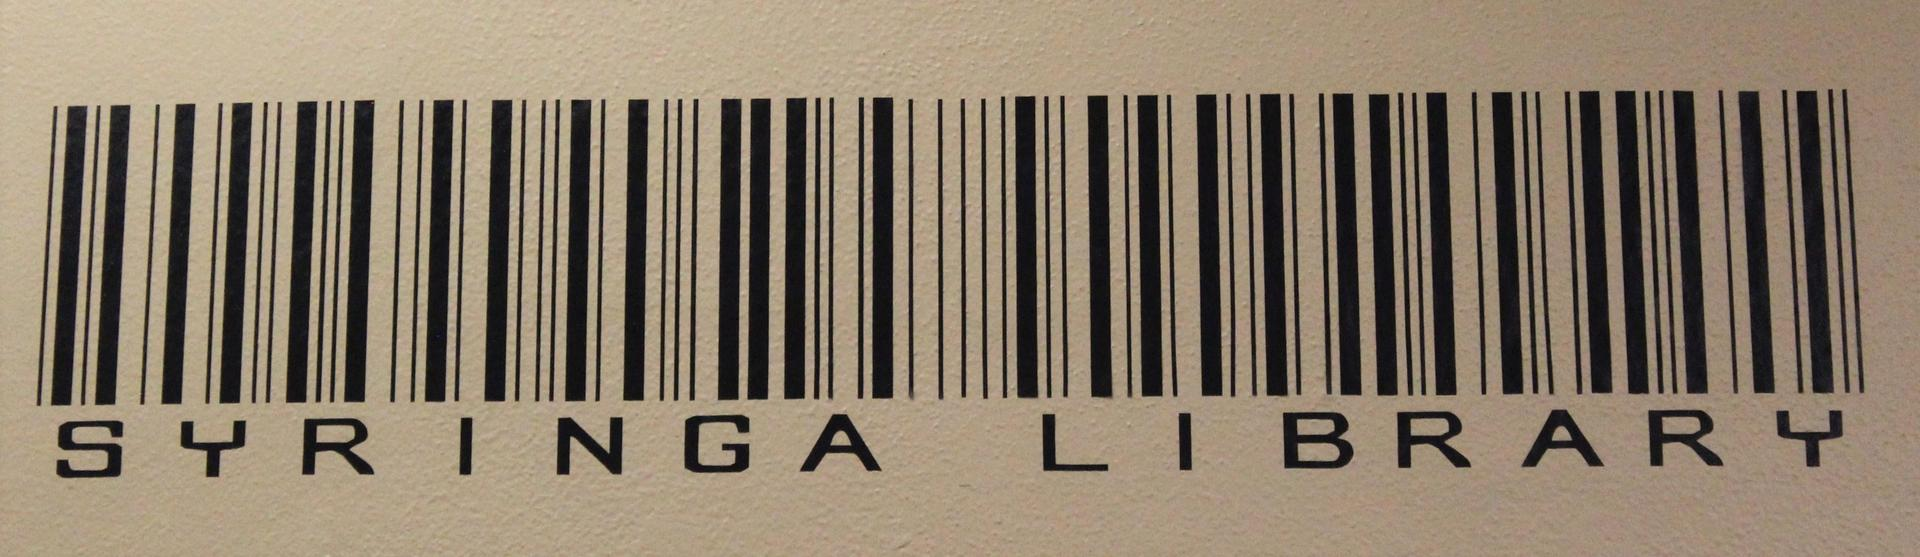 Library barcode